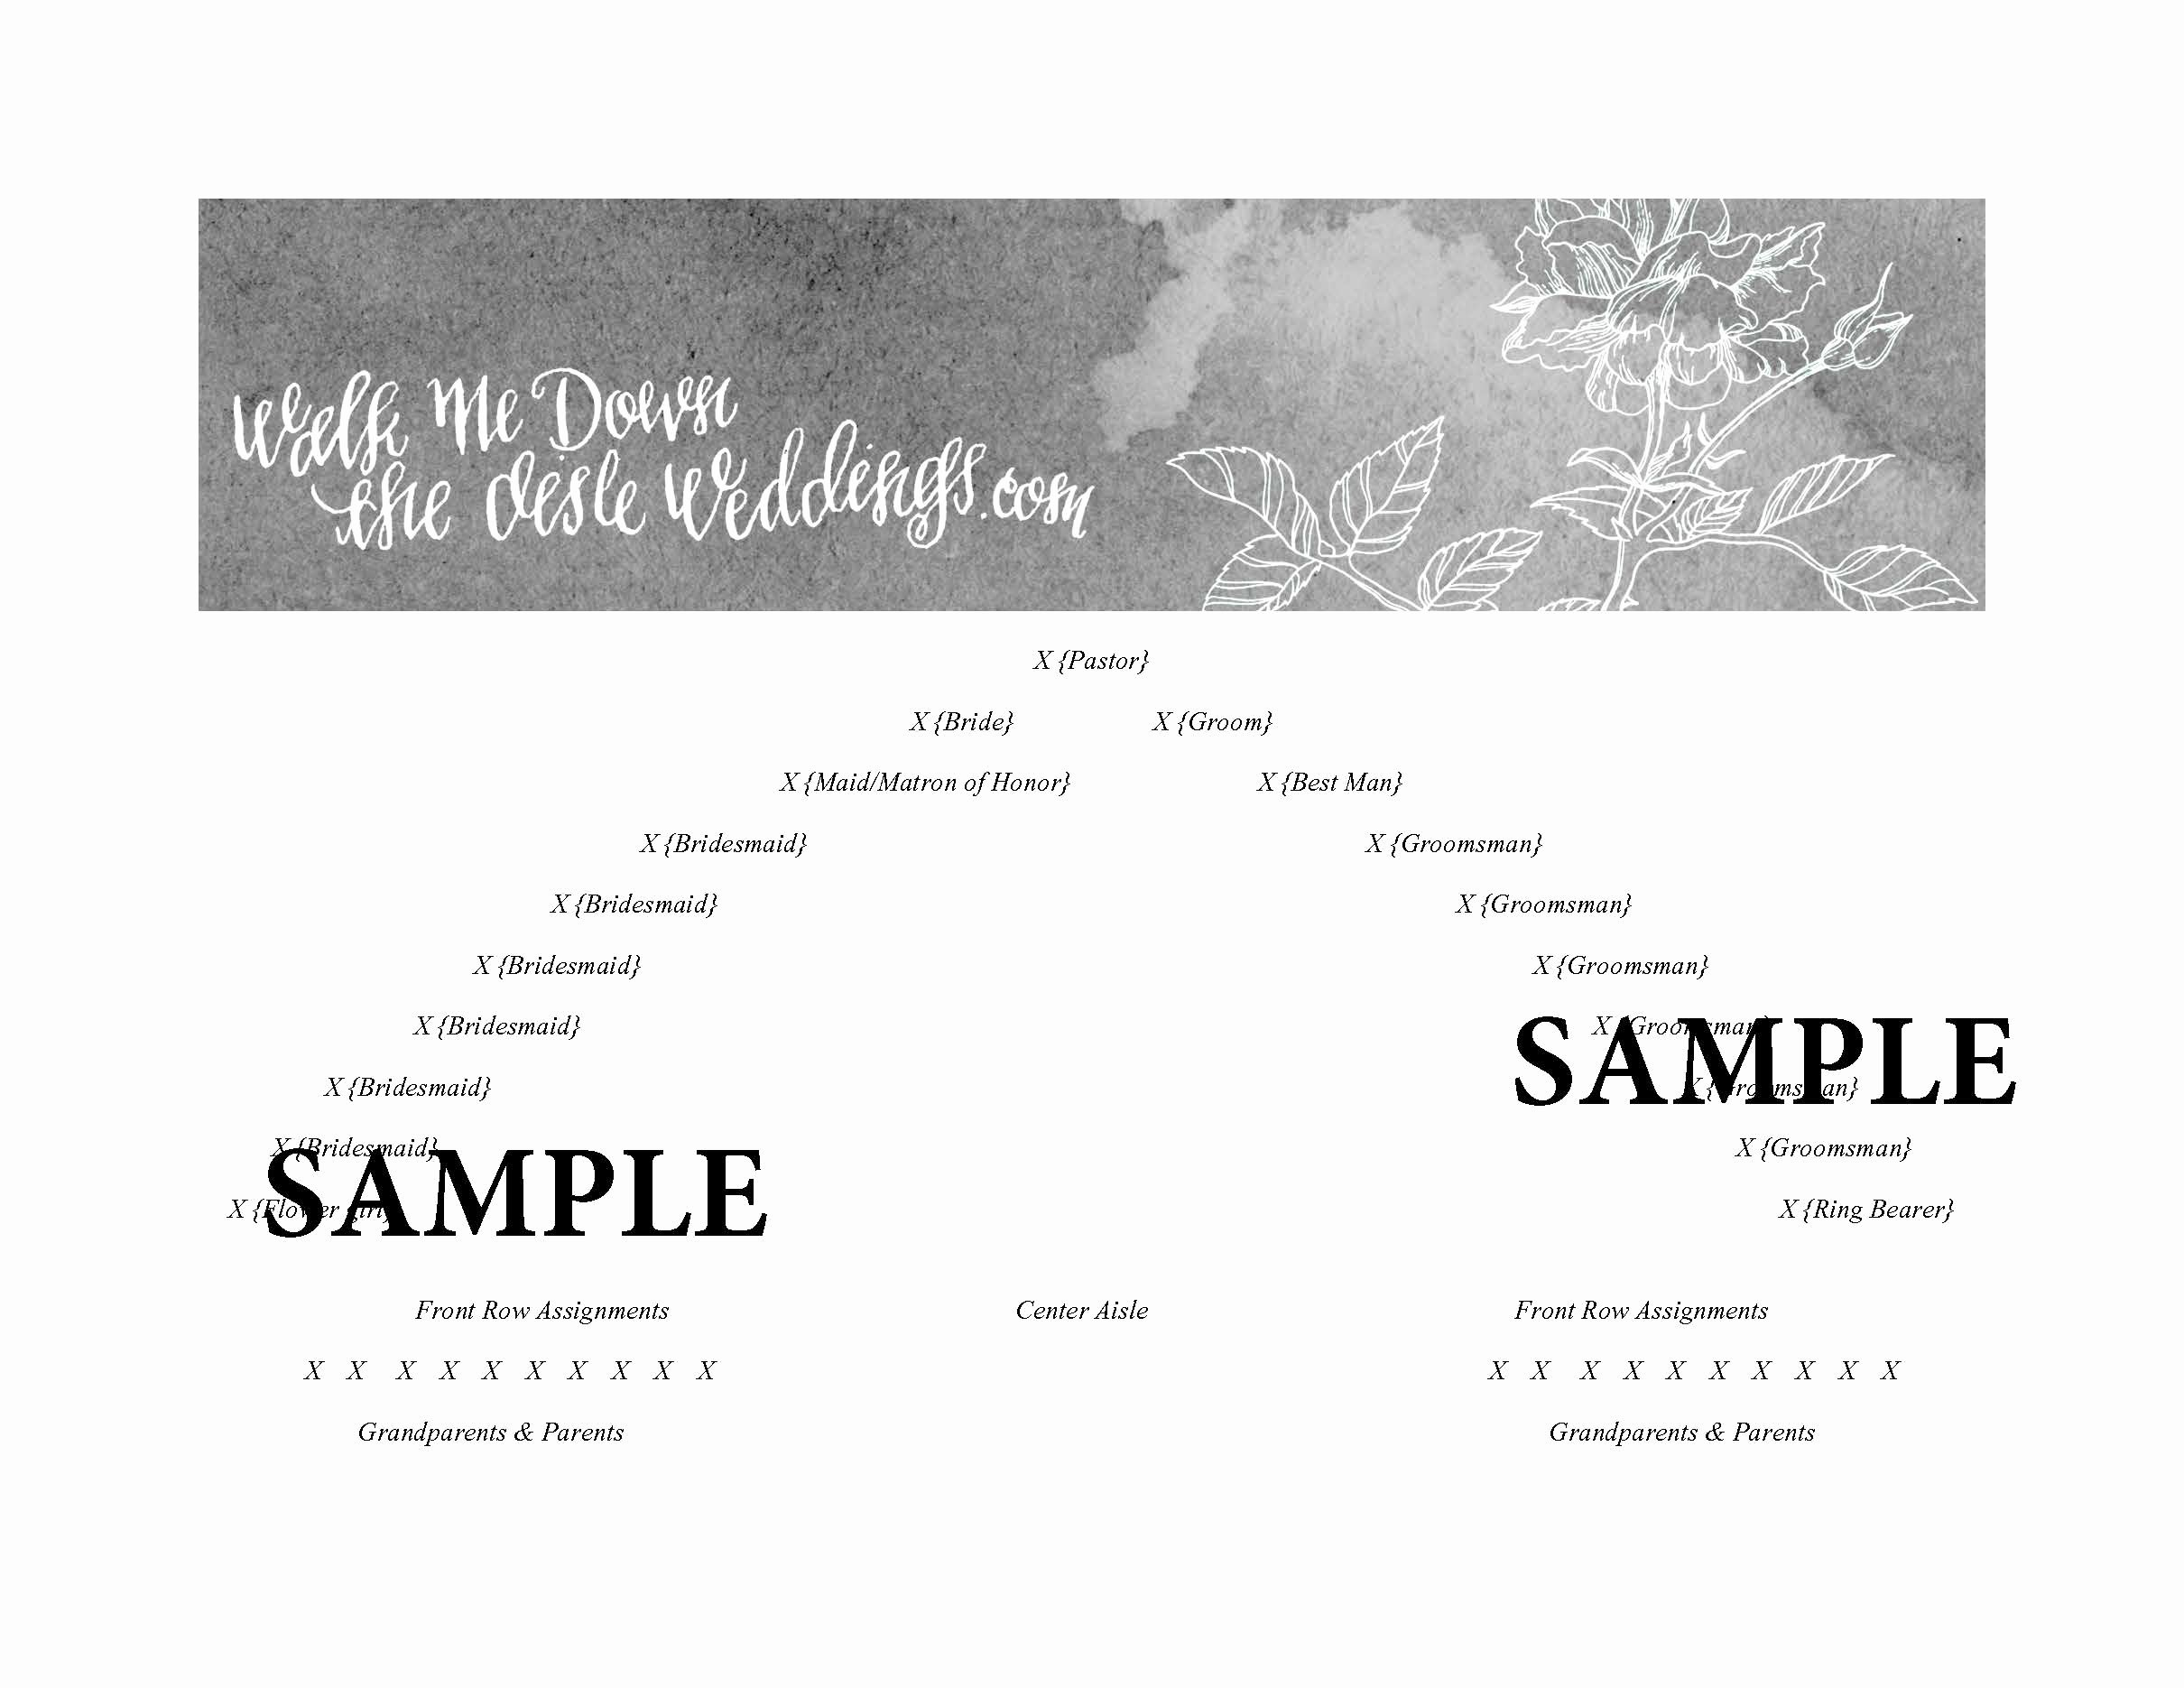 Church Seating Chart Template Best Of Church Wedding Seating Plan Template